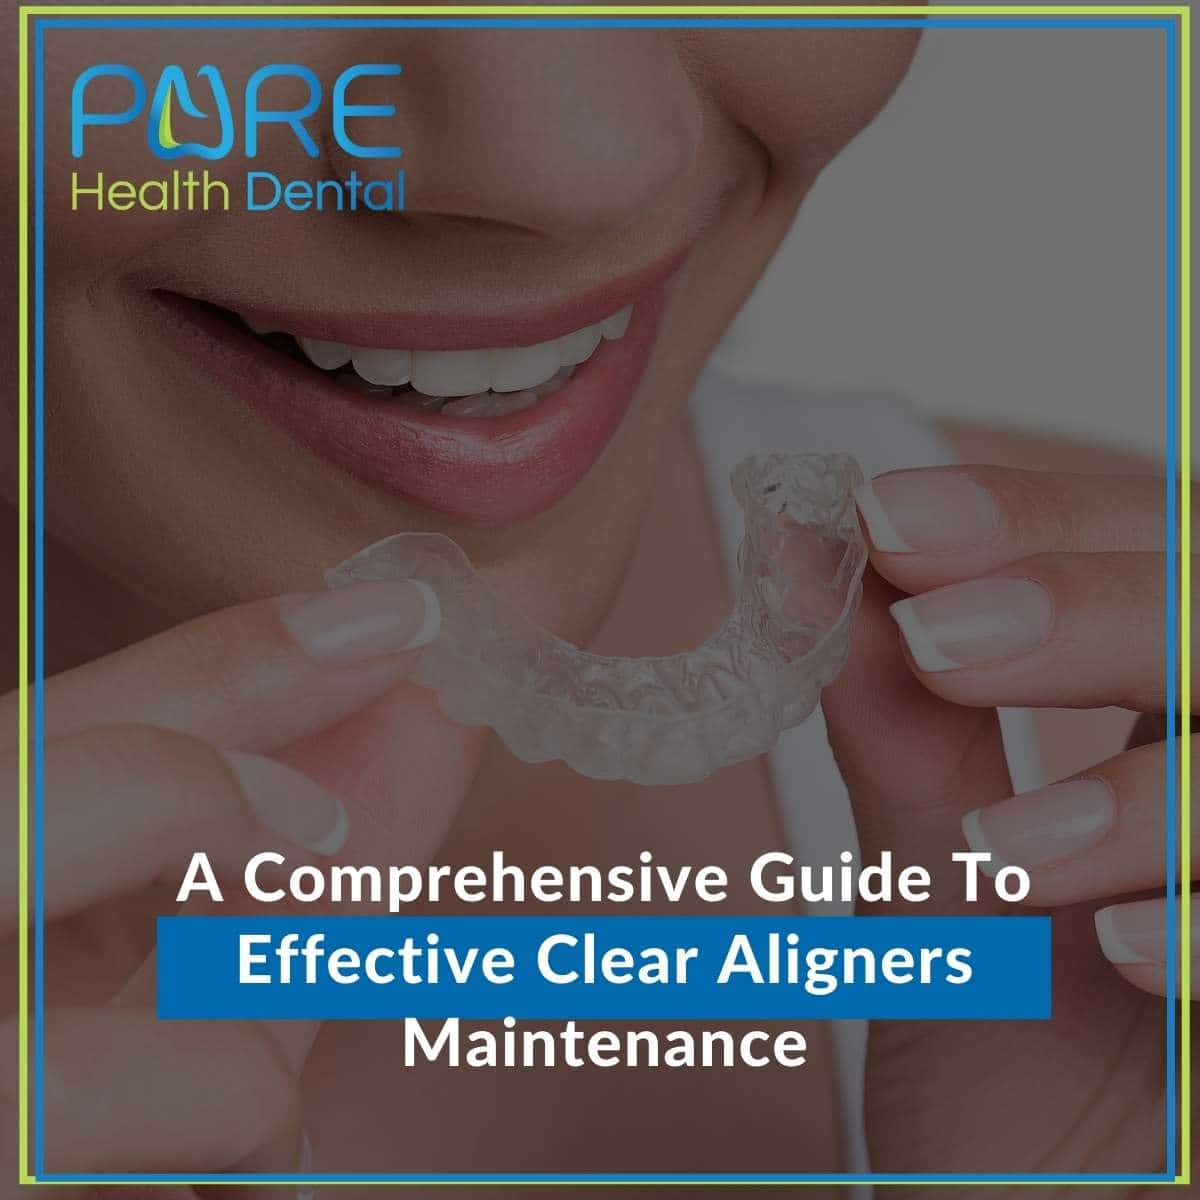 A Comprehensive Guide To Effective Clear Aligners Maintenance